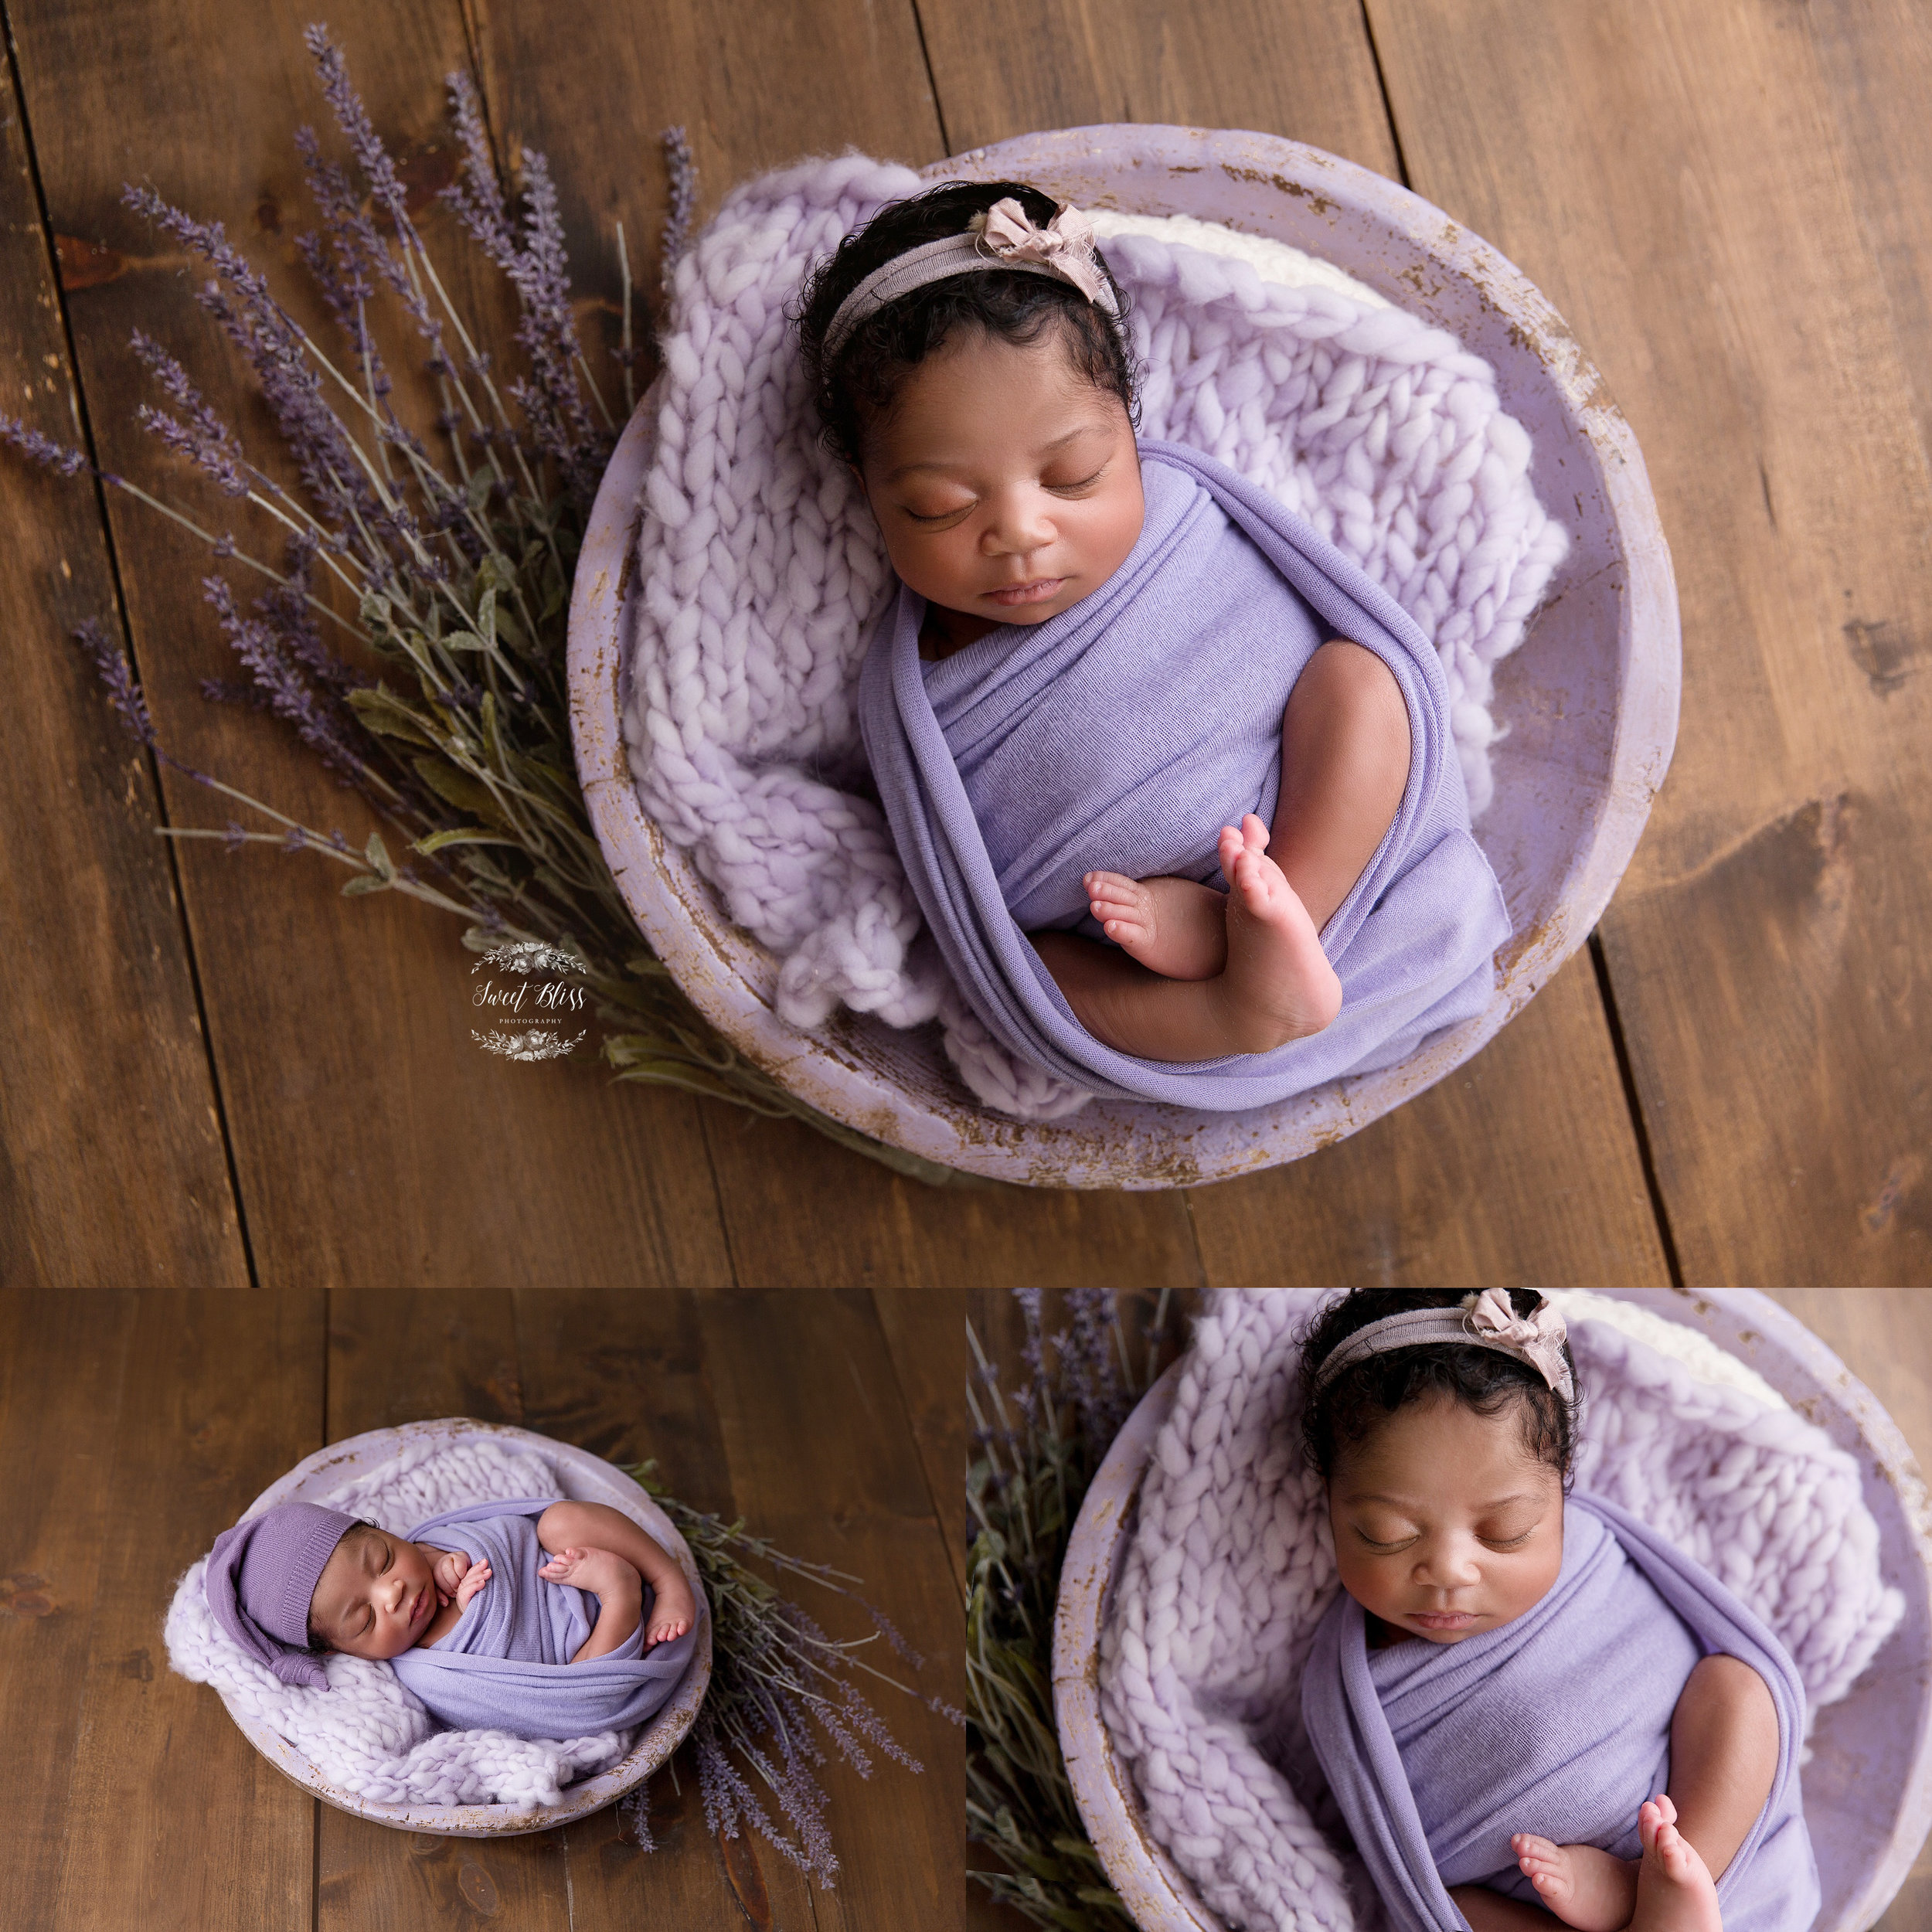 newbornphotographer_maryland_purplebowl1.jpg